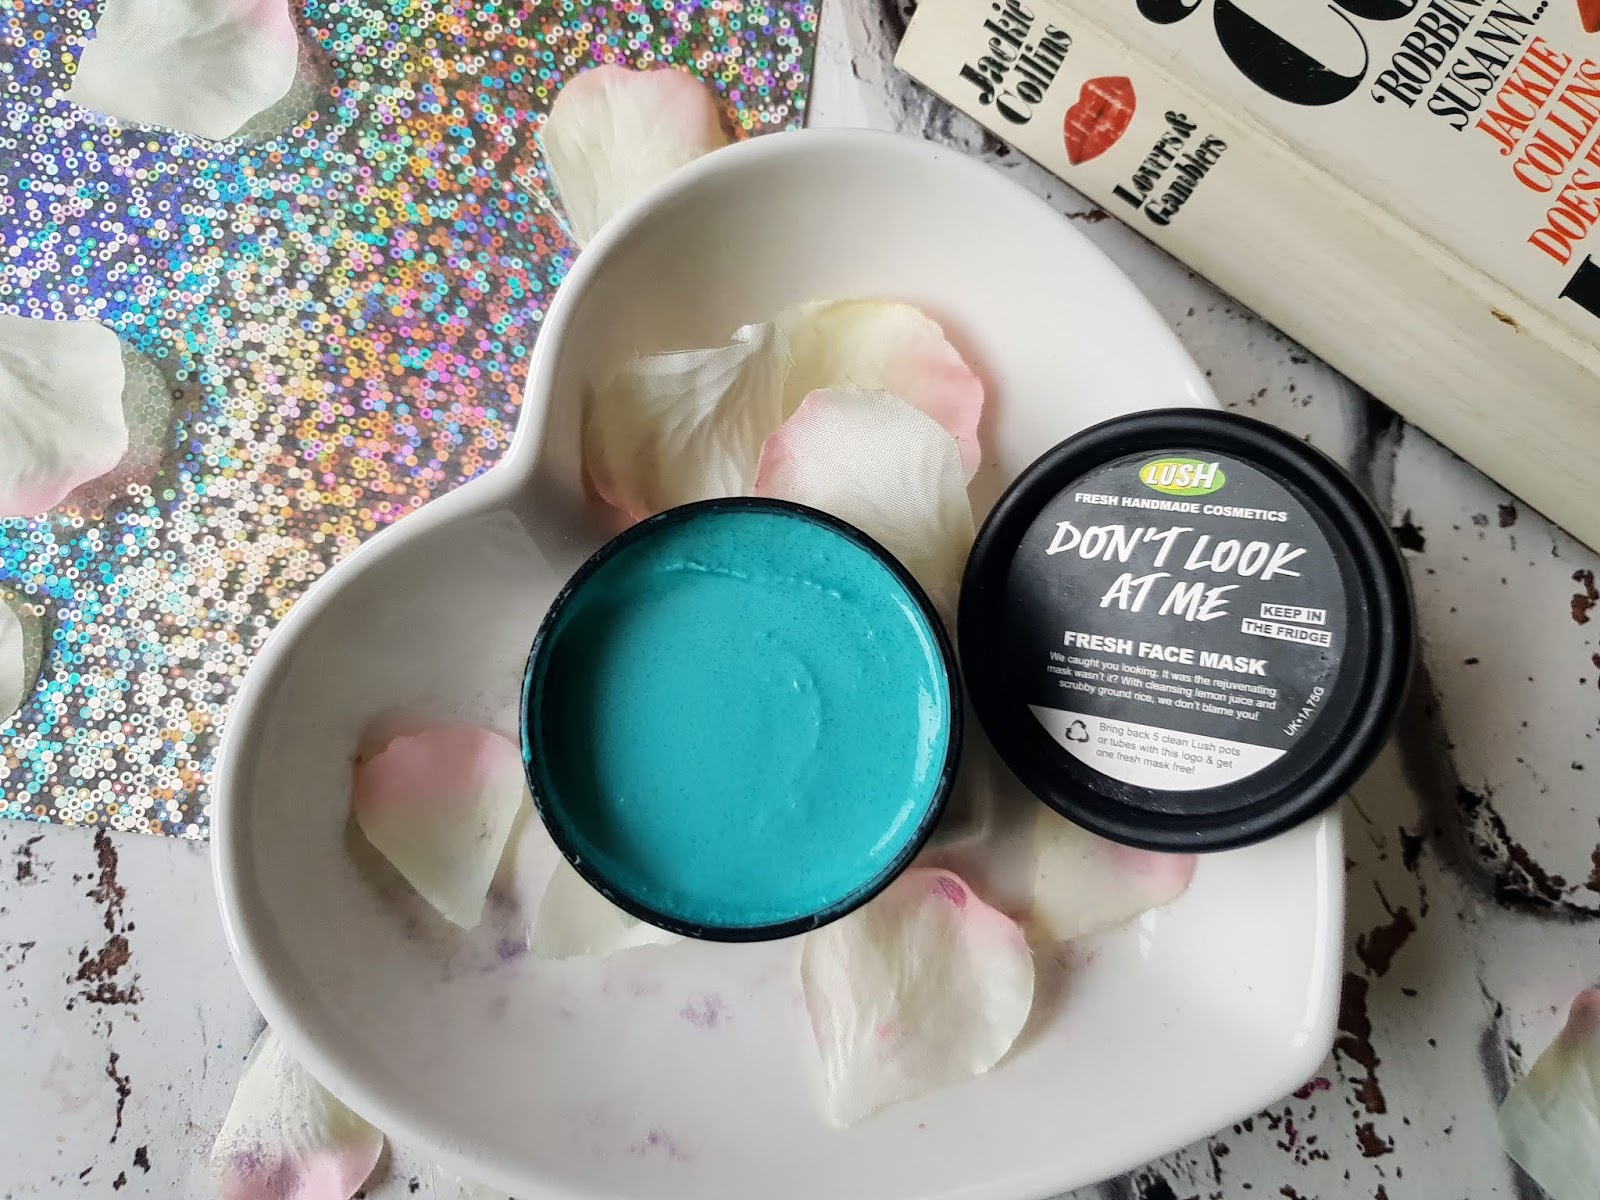 Lush Don't Look At Me  Fresh Face Mask | Review